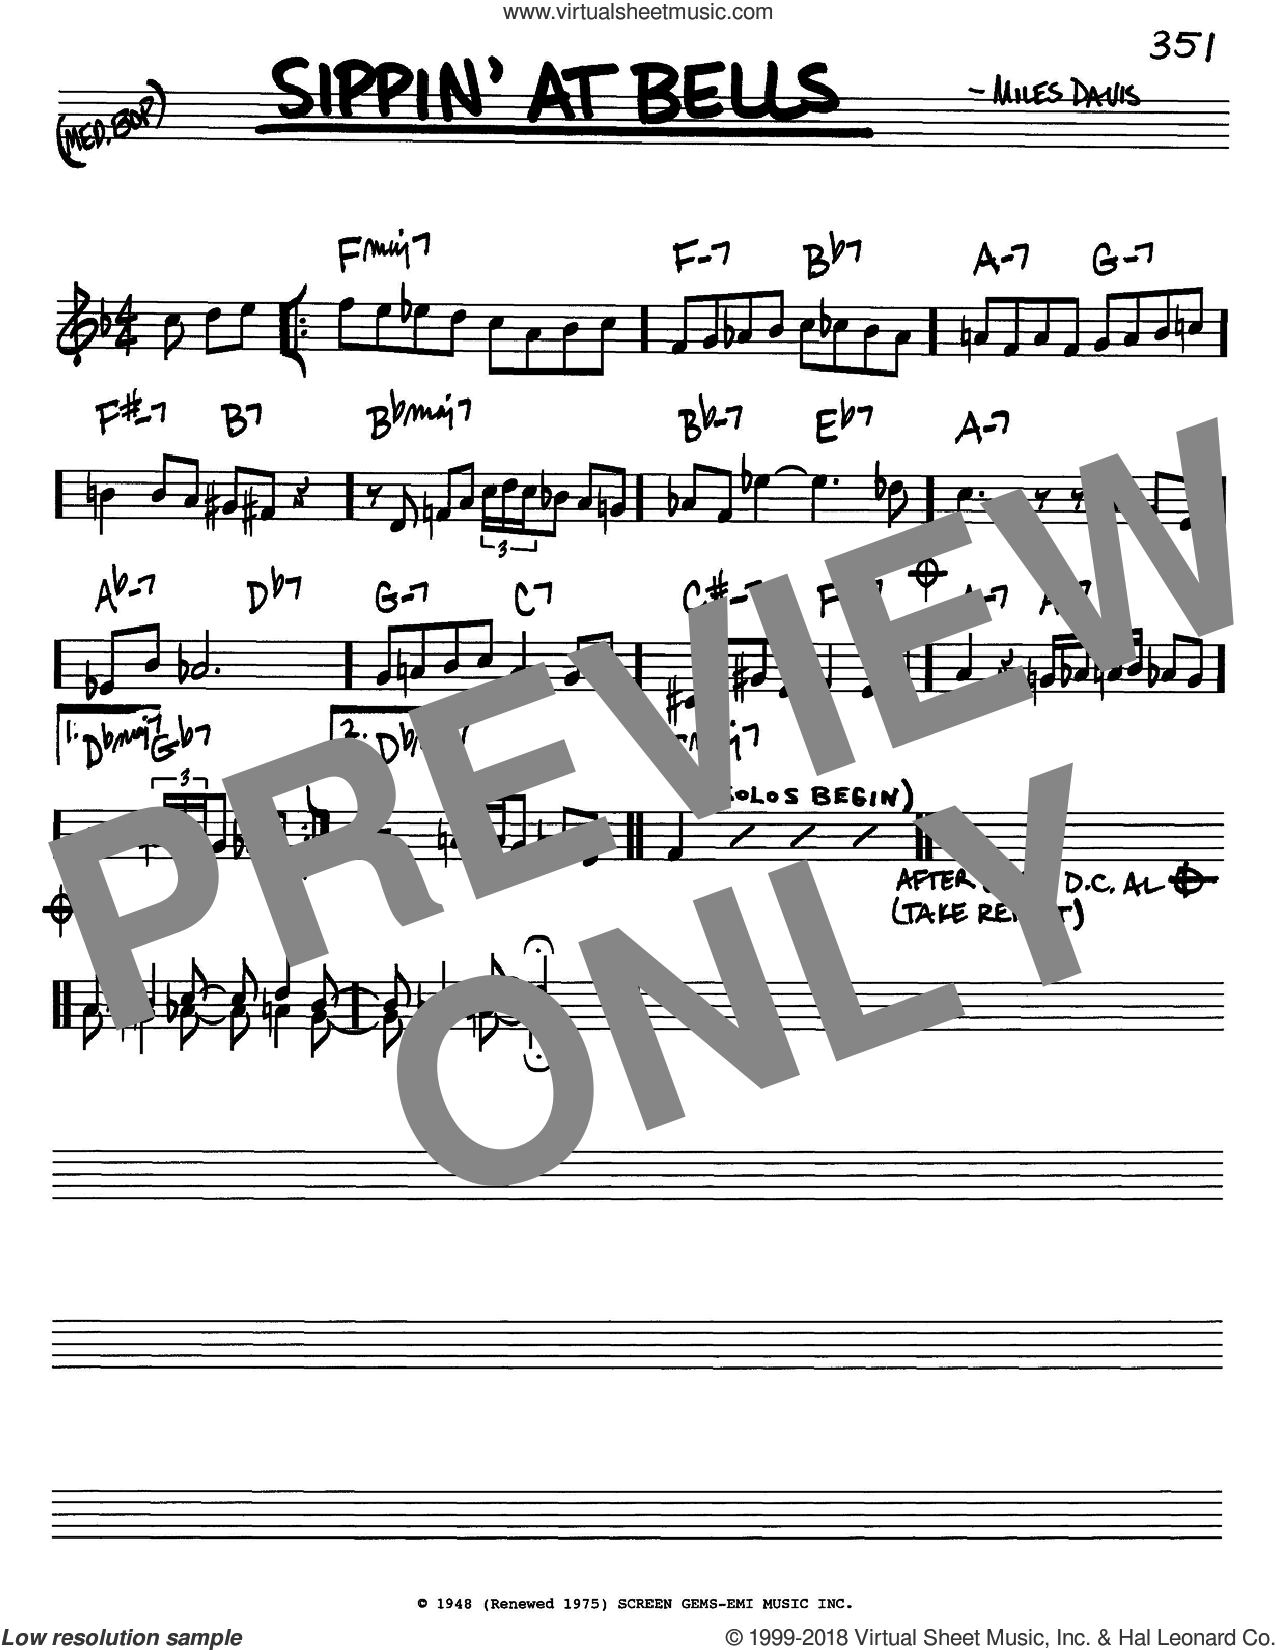 Sippin' At Bells sheet music for voice and other instruments (in C) by Miles Davis, intermediate skill level